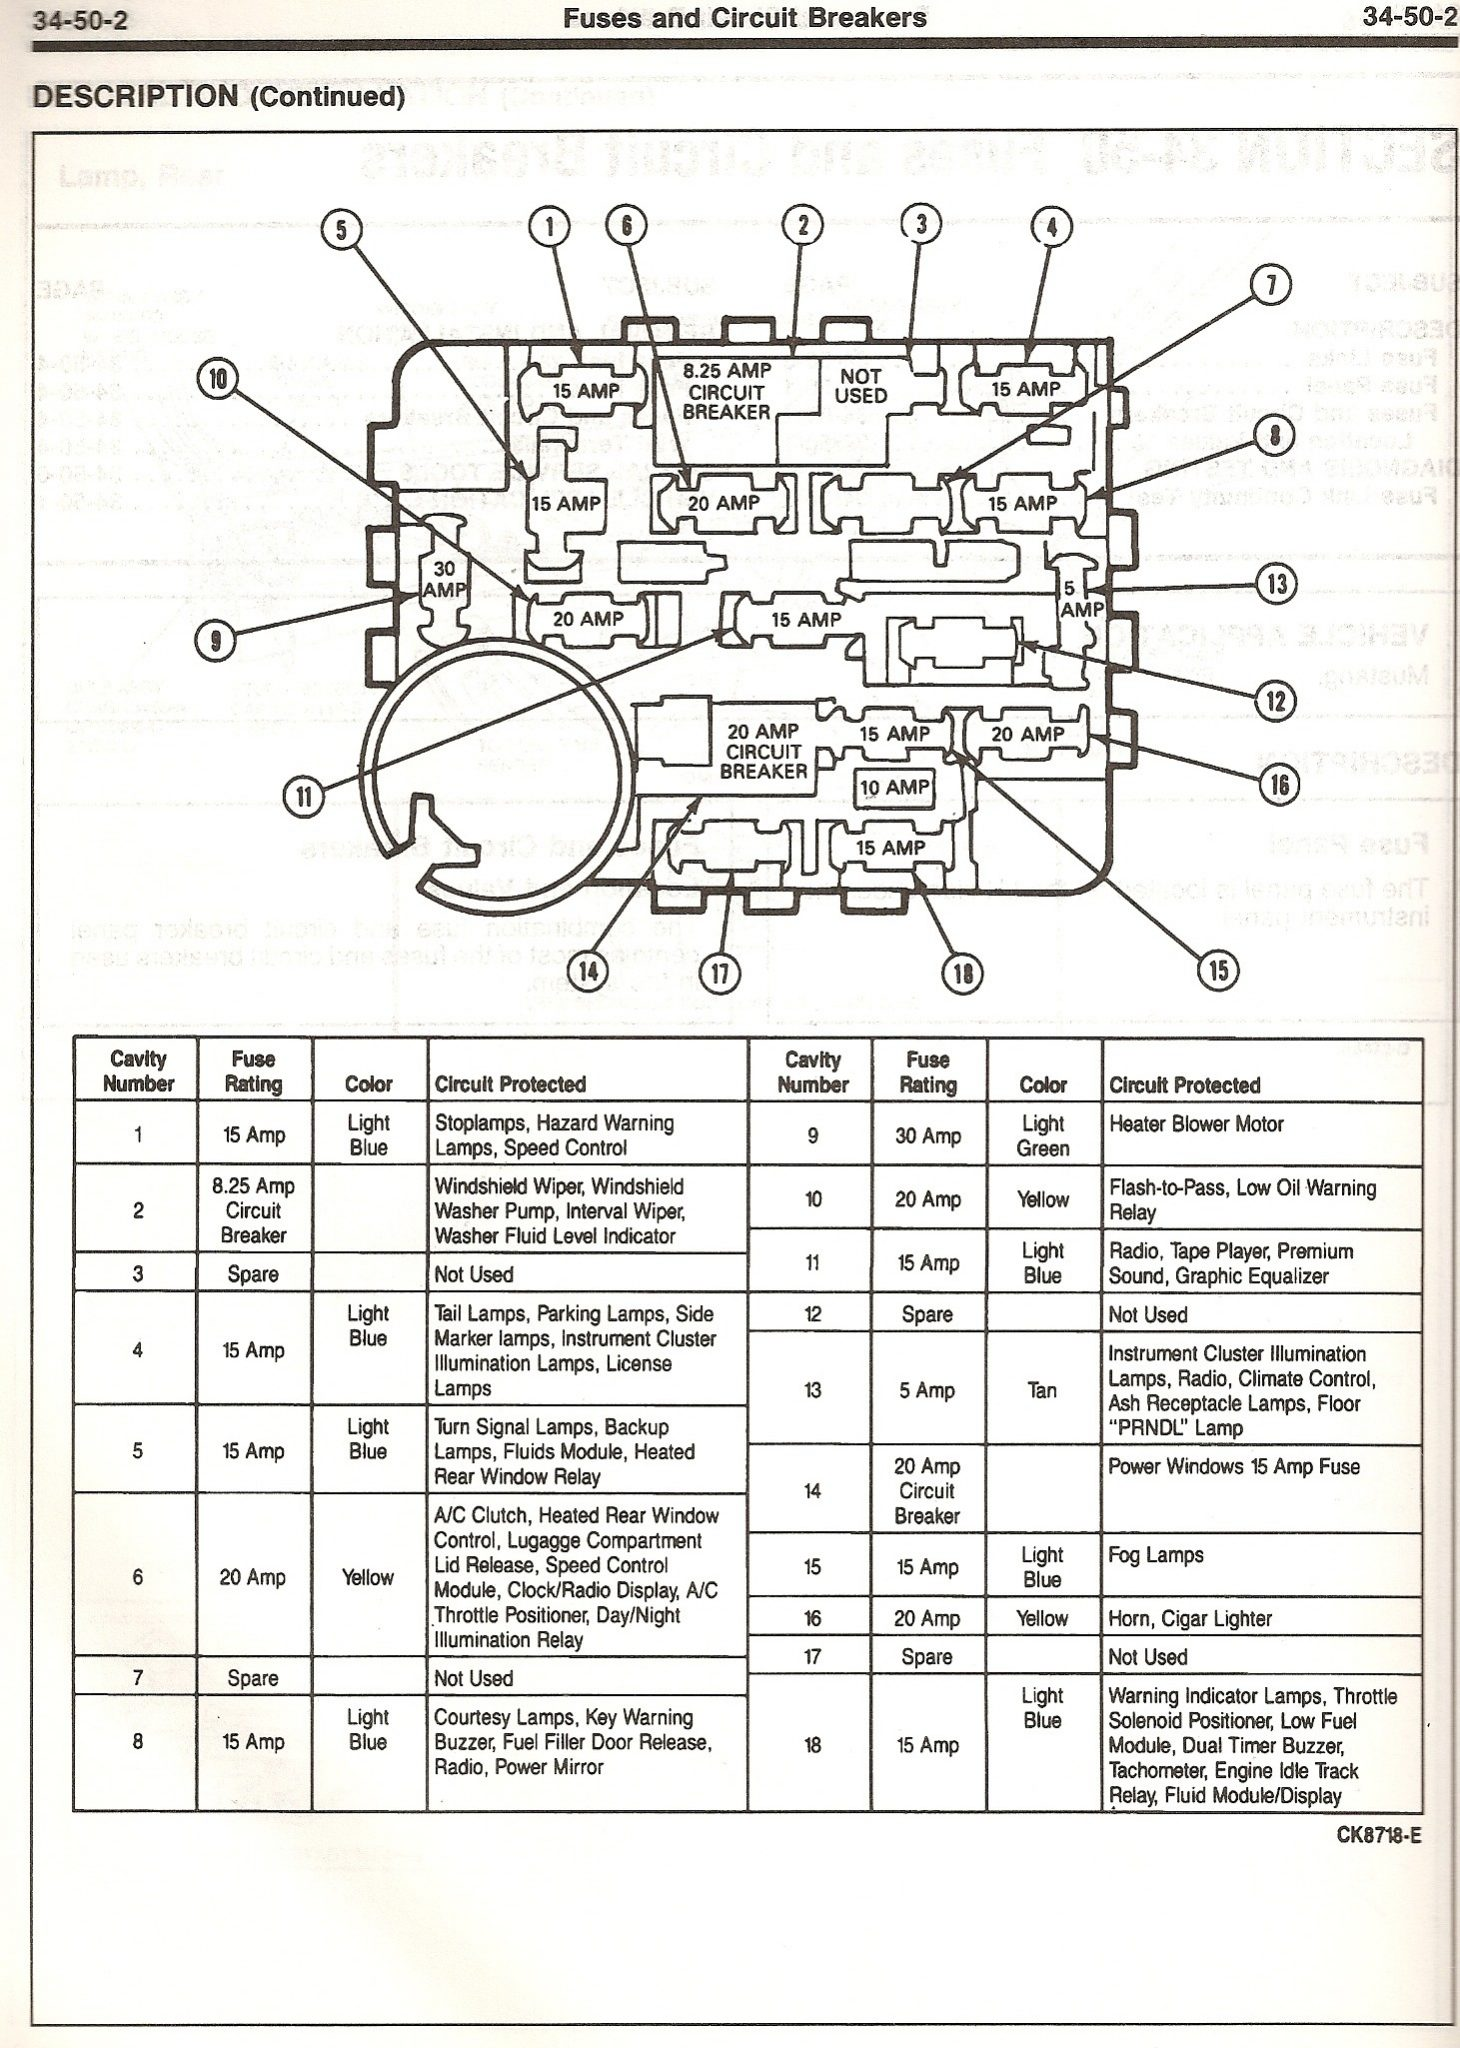 2007 Saturn Vue Radio Wiring Diagram besides Perfect On Off Toggle Switch Wiring Diagram 80 7 Blade Trailer Inside as well 2004 Venture Spark Plug Wire Diagram besides Radio Wiring Diagram For 2007 Cobalt likewise MO8u 13271. on 1999 chevy radio wiring diagram